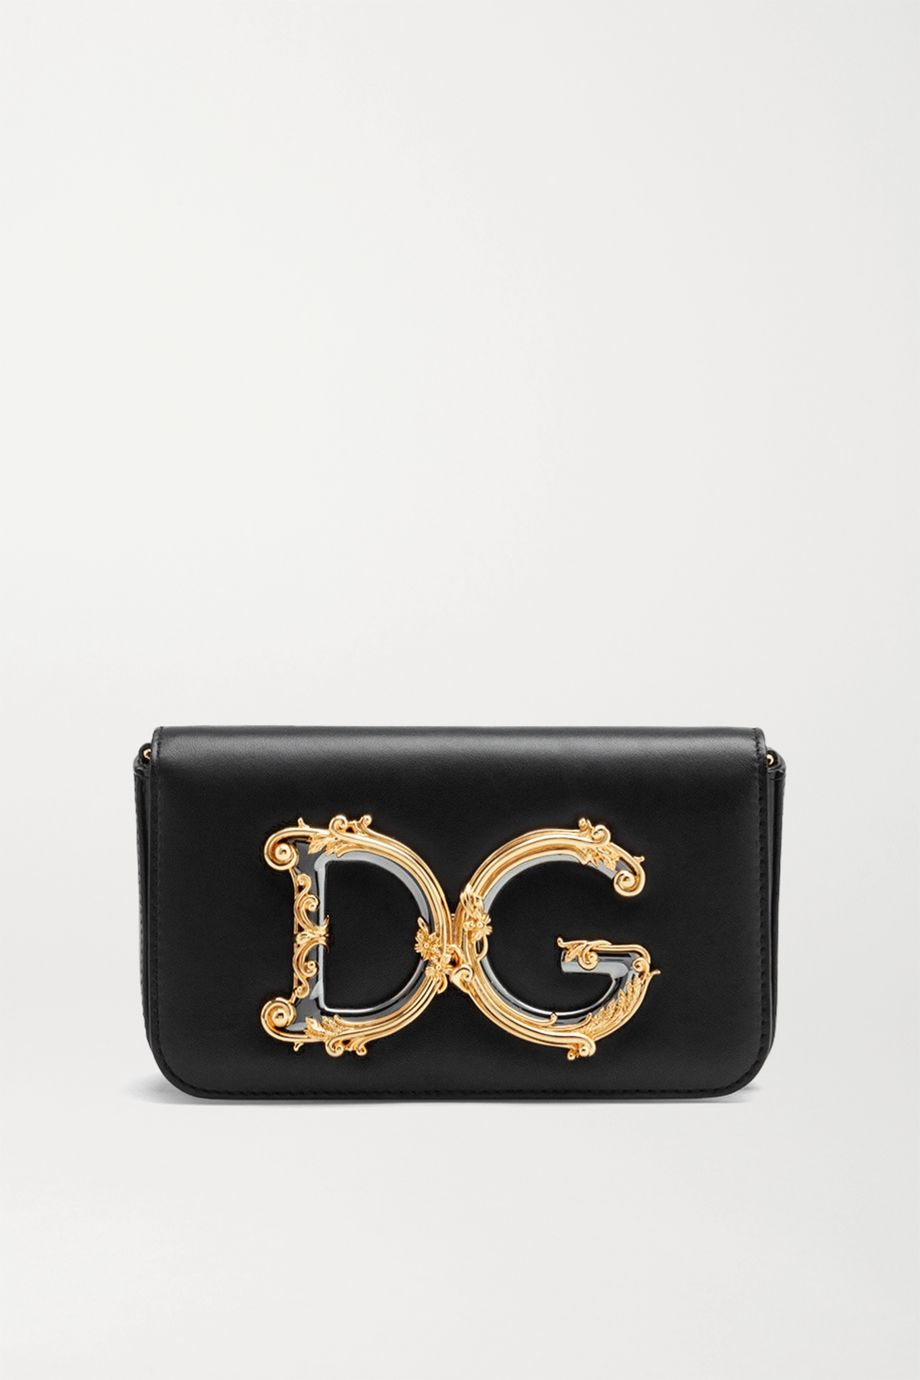 Dolce & Gabbana DG Girls embellished leather shoulder bag